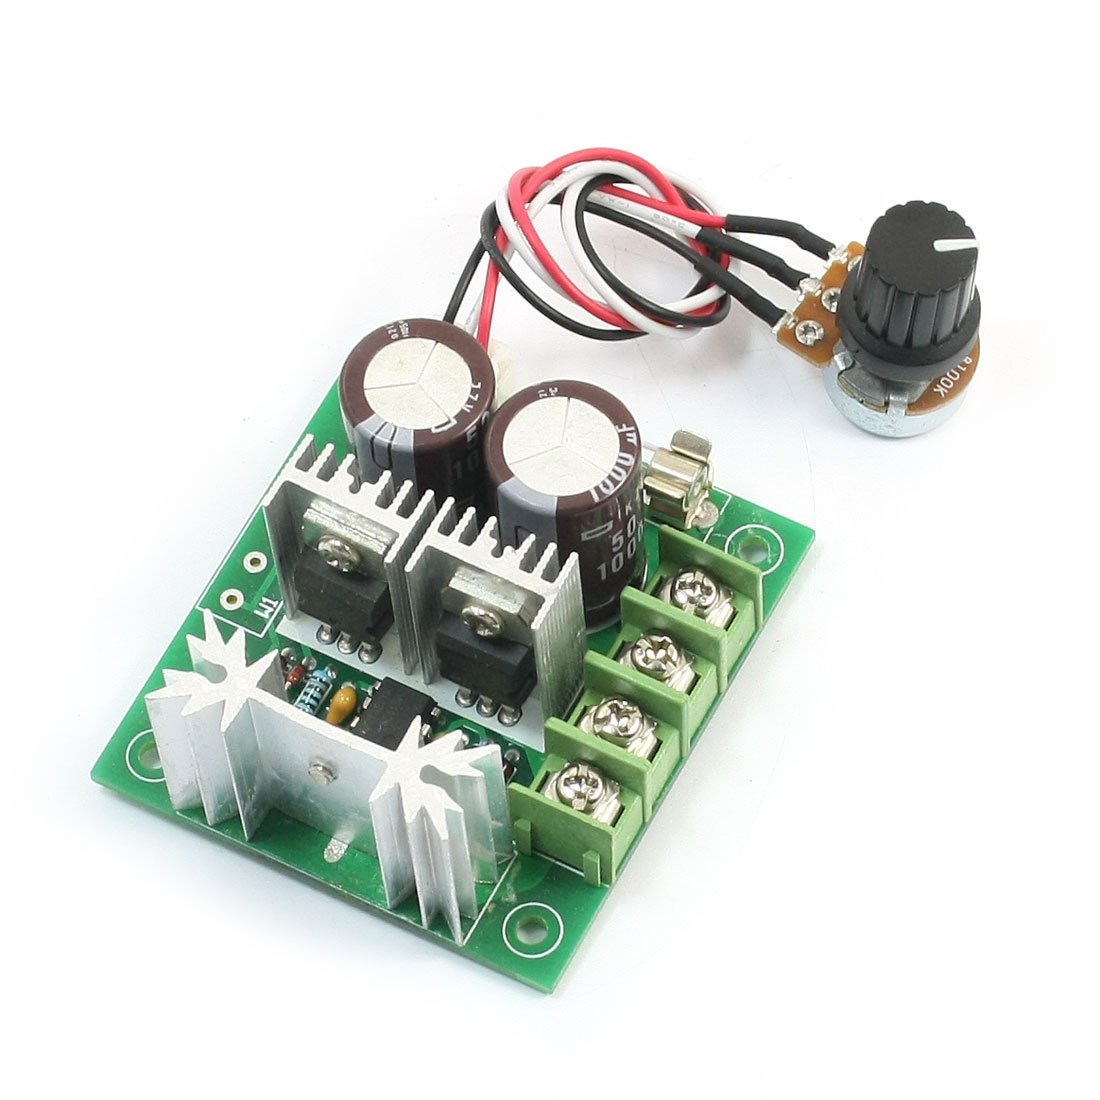 CCMHCW DC12-40V 400W 10A Adjustable PWM DC Motor Speed Controller